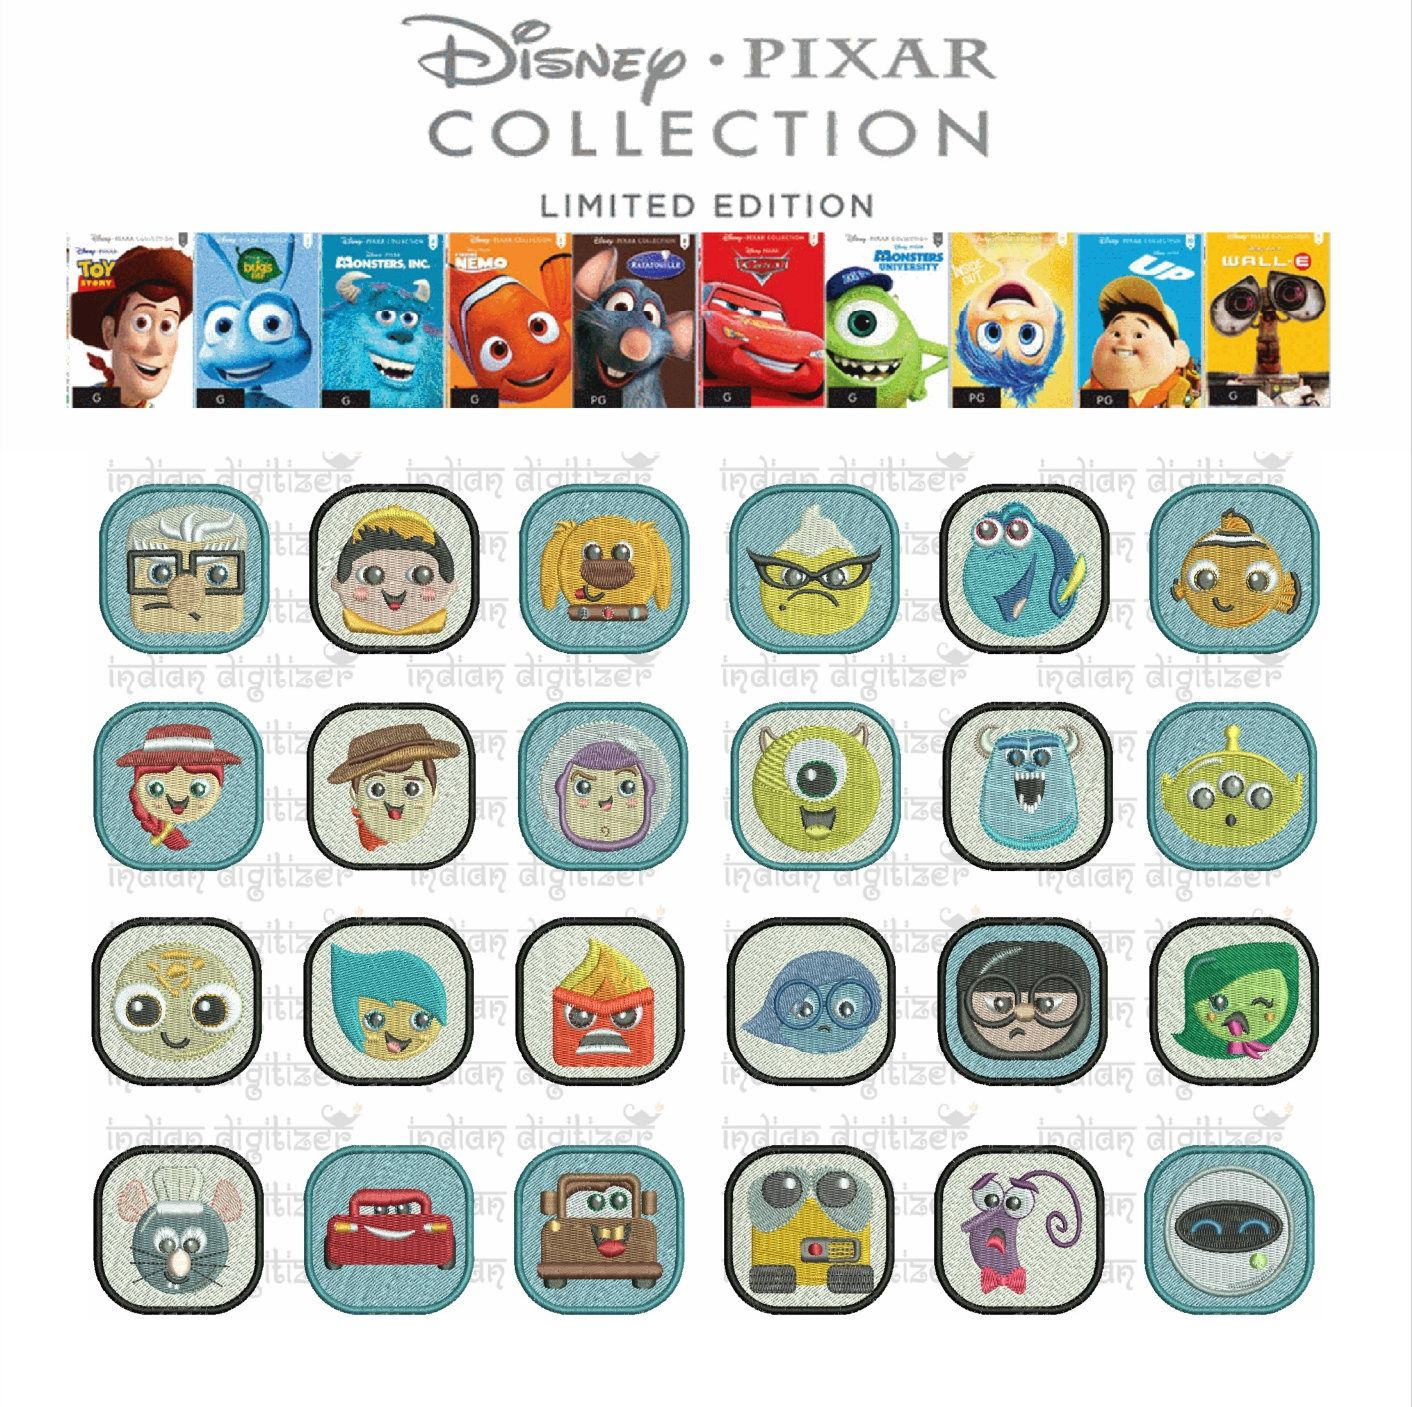 20 Disney Toy Story Collection Machine Embroidery Designs brother PES JEF HUS